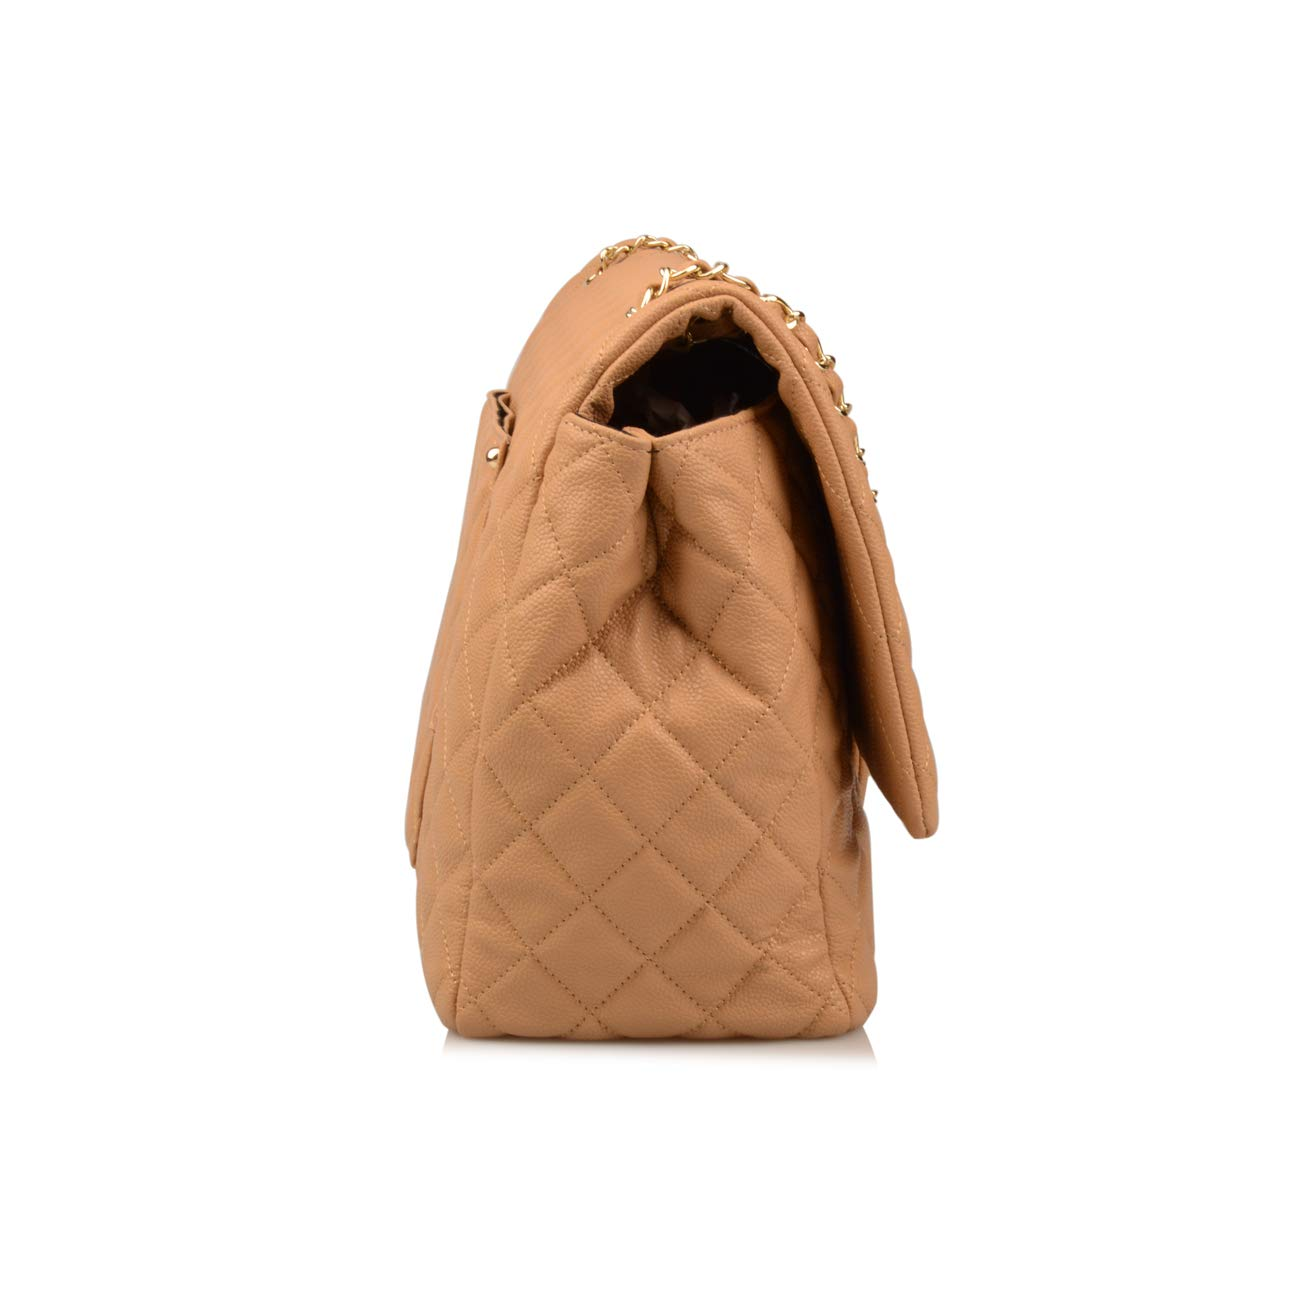 Ainifeel Women's Genuine Leather Oversize Quilted Flap Handbag Large Travelling Tote Bag Luggage Holdall (Oversize, Apricot (gold hardware)) by Ainifeel Quilted&Chain Strap Collection (Image #3)